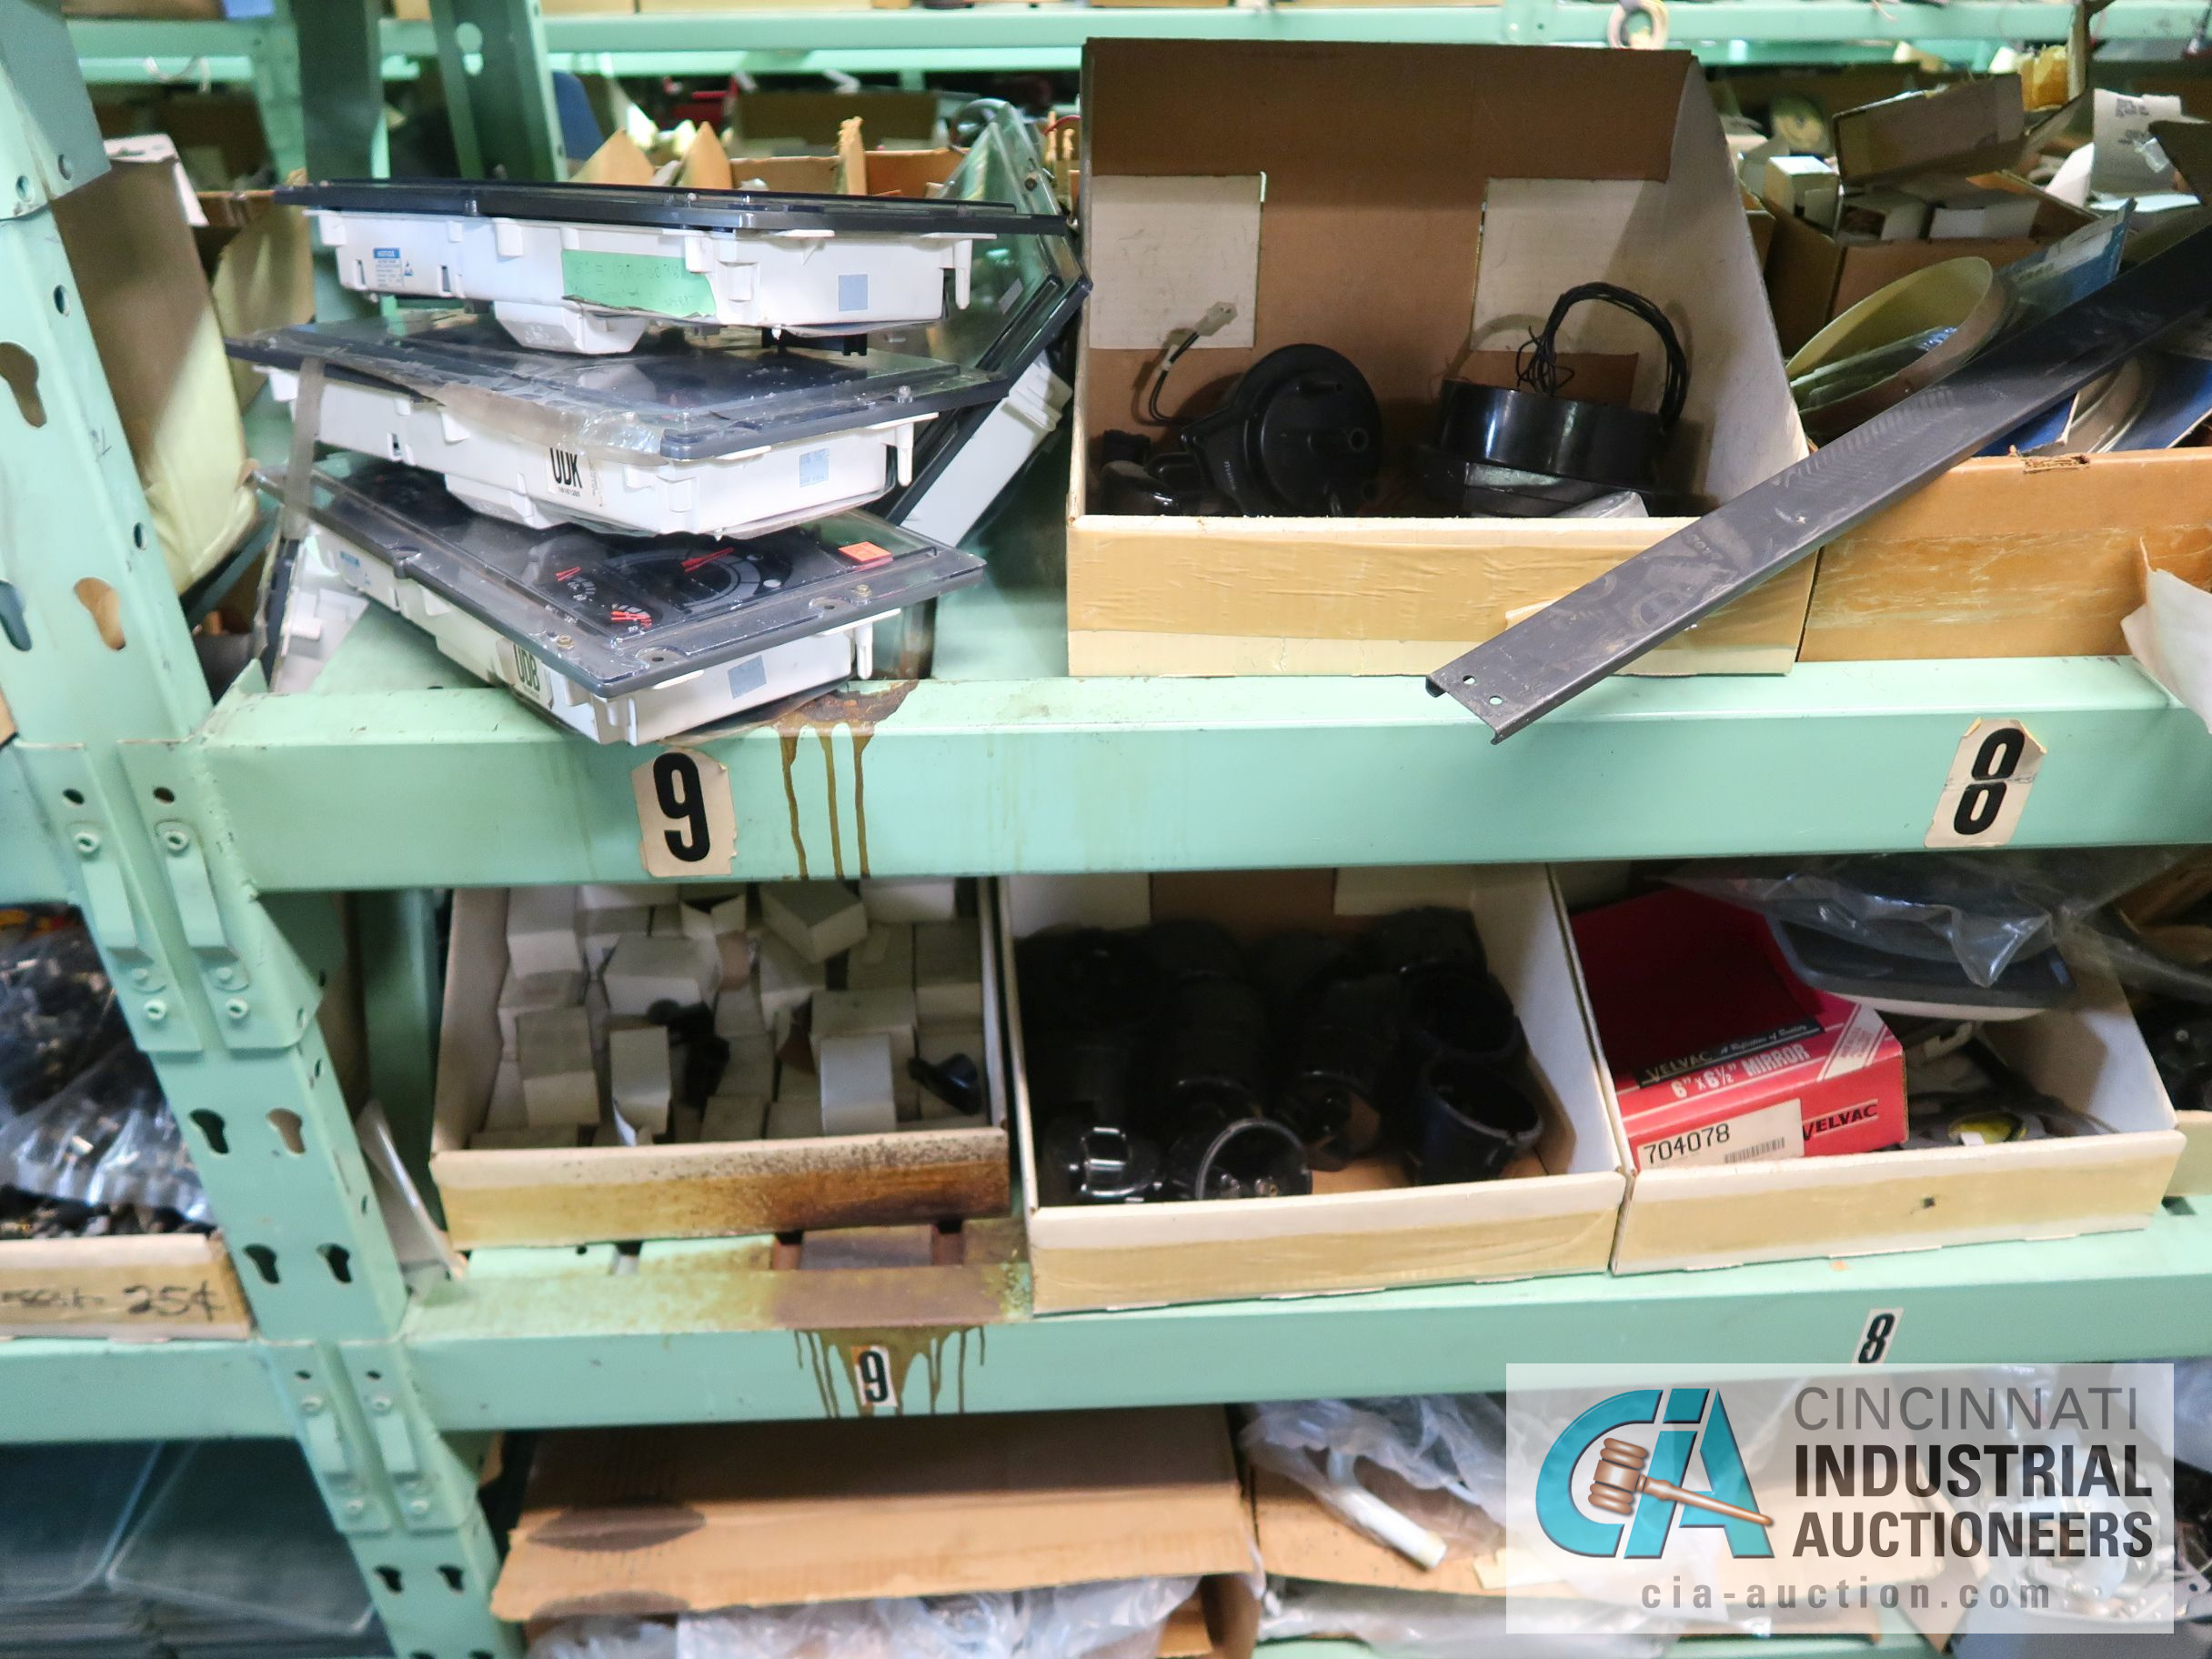 CONTENTS OF (5) RACKS INCLUDING MISCELLANEOUS AUTOMOTIVE PARTS, LIGHTS, FILTERS, ENGINE PARTS, RIMS, - Image 24 of 29